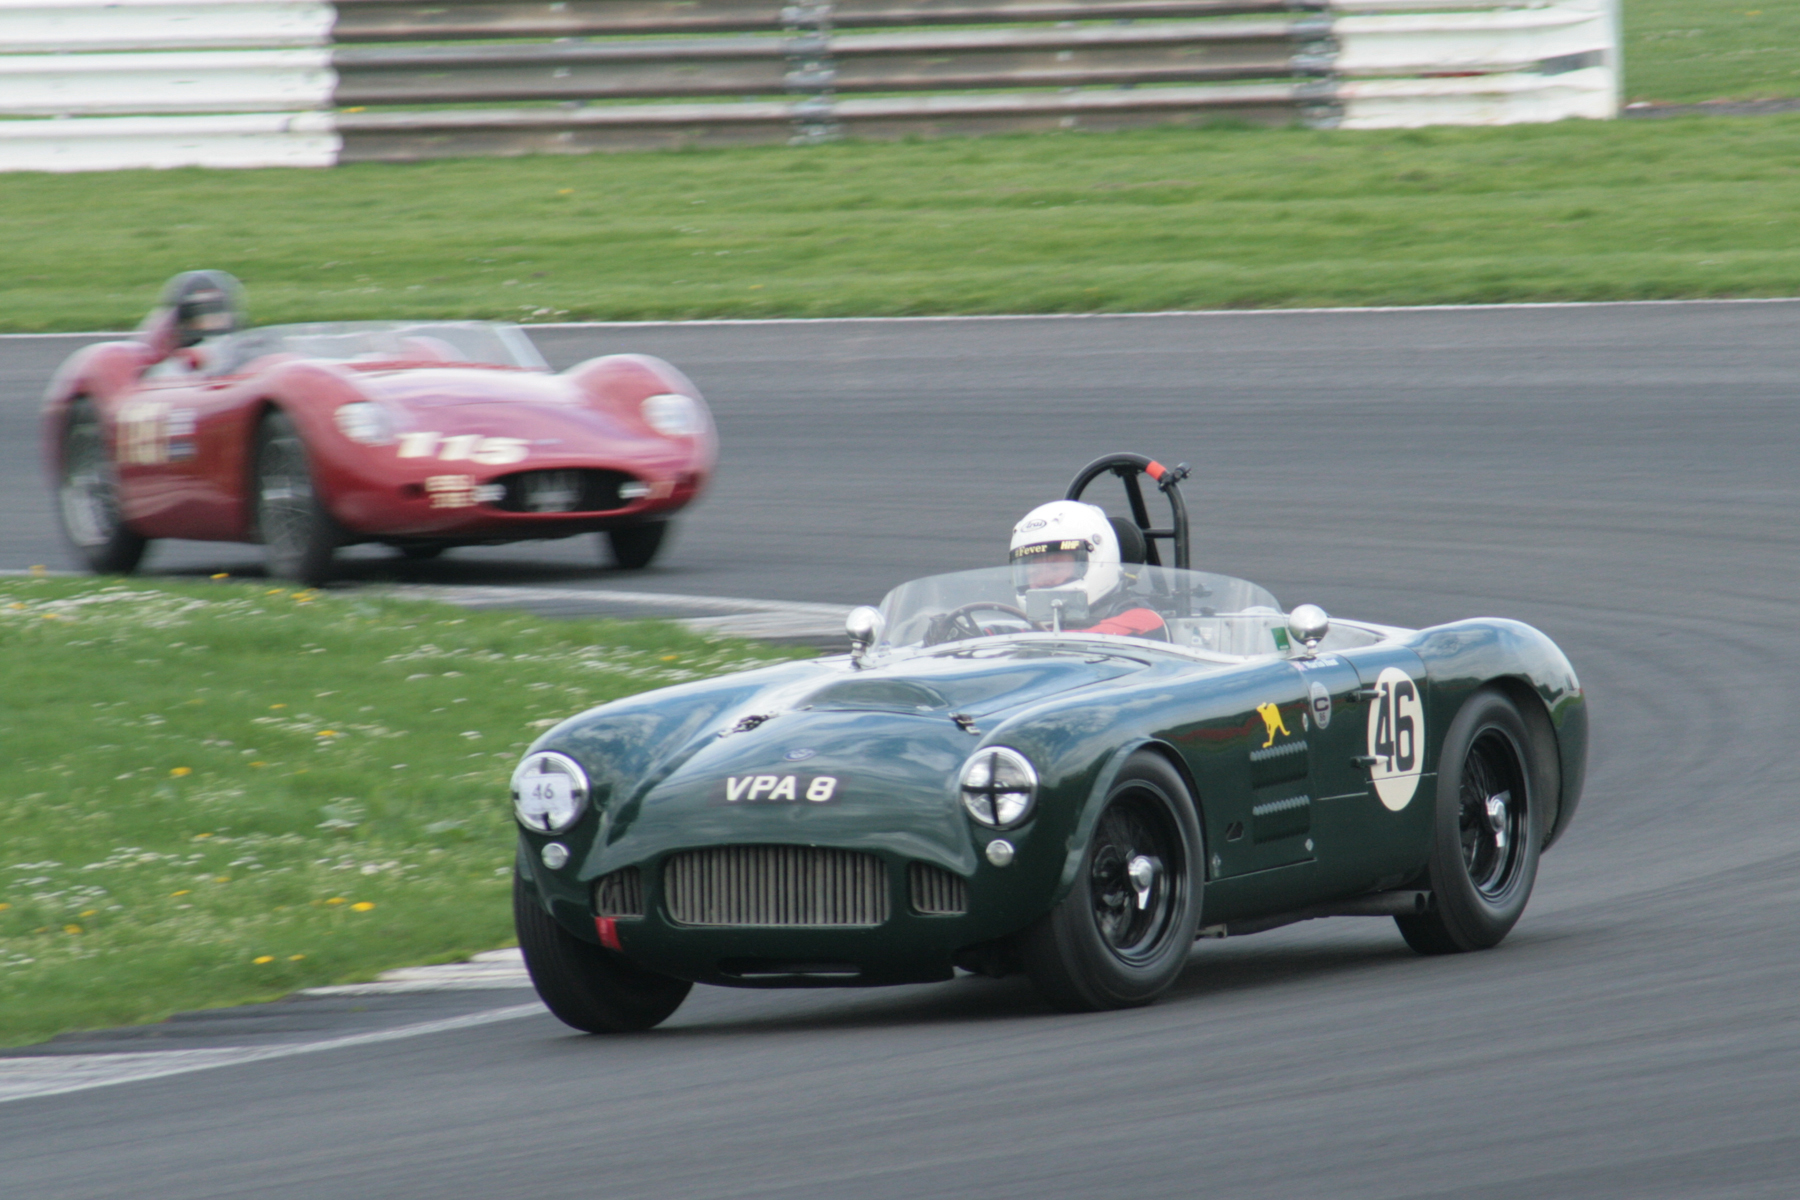 Martin Hunt made a superb start in his HWM Jaguar to snatch the lead which was the building block for his victory, sharing with Patrick Blakeney -Edwards, over the very fast Maserati 250S of Richard Wilson. Photo - John Turner